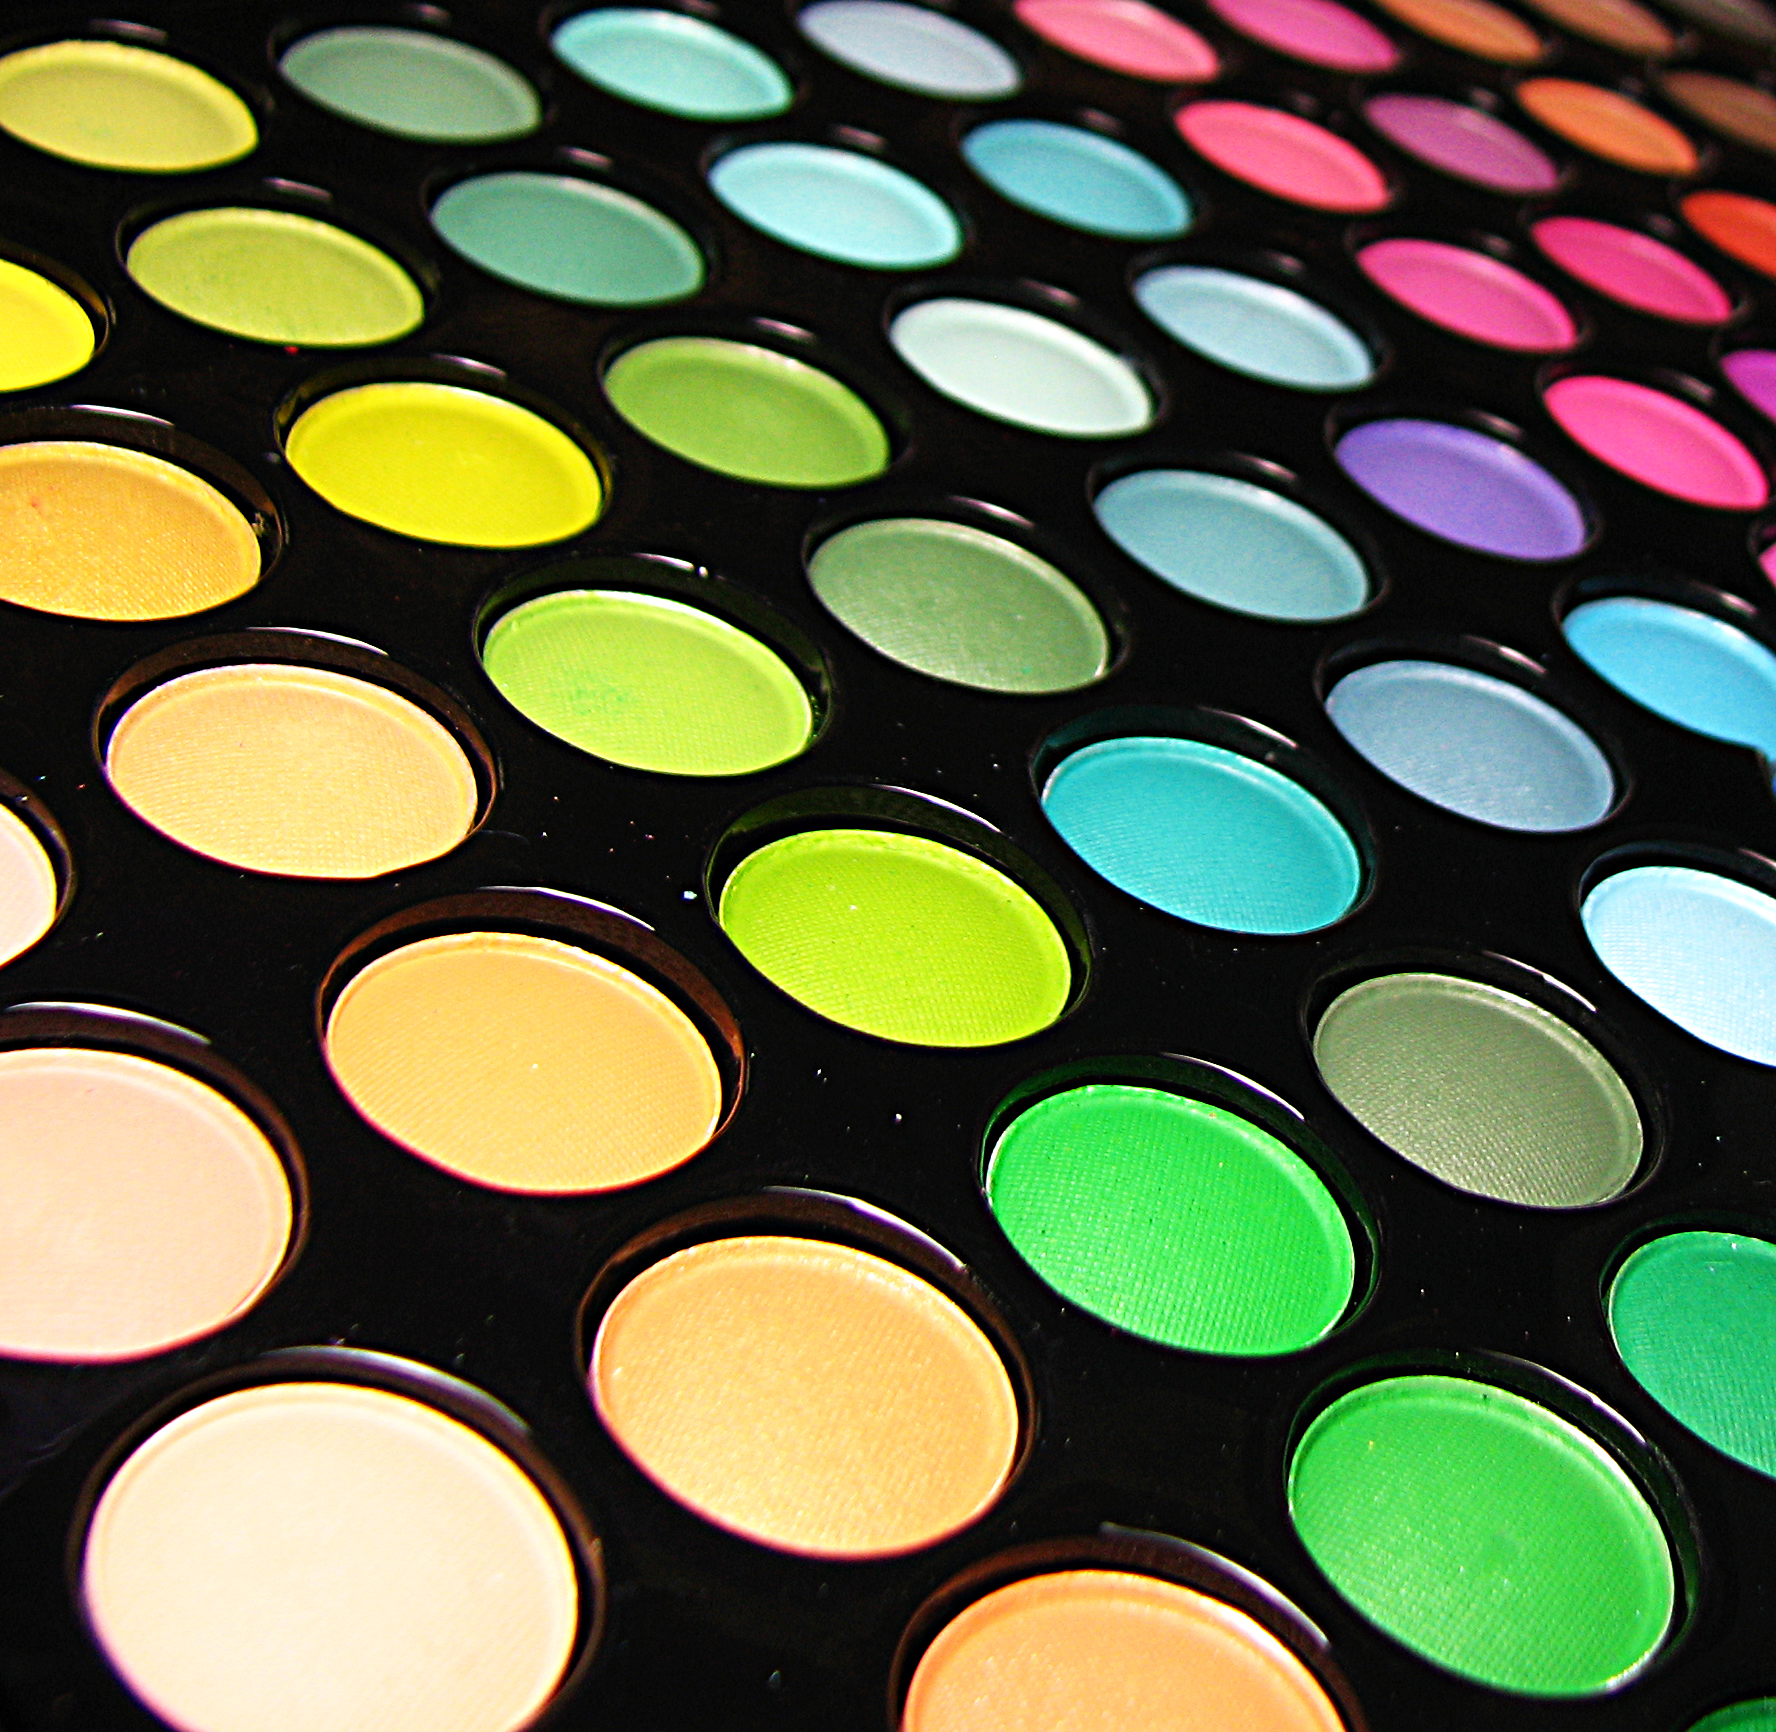 168 Eyeshadow Color Palette on Storenvy